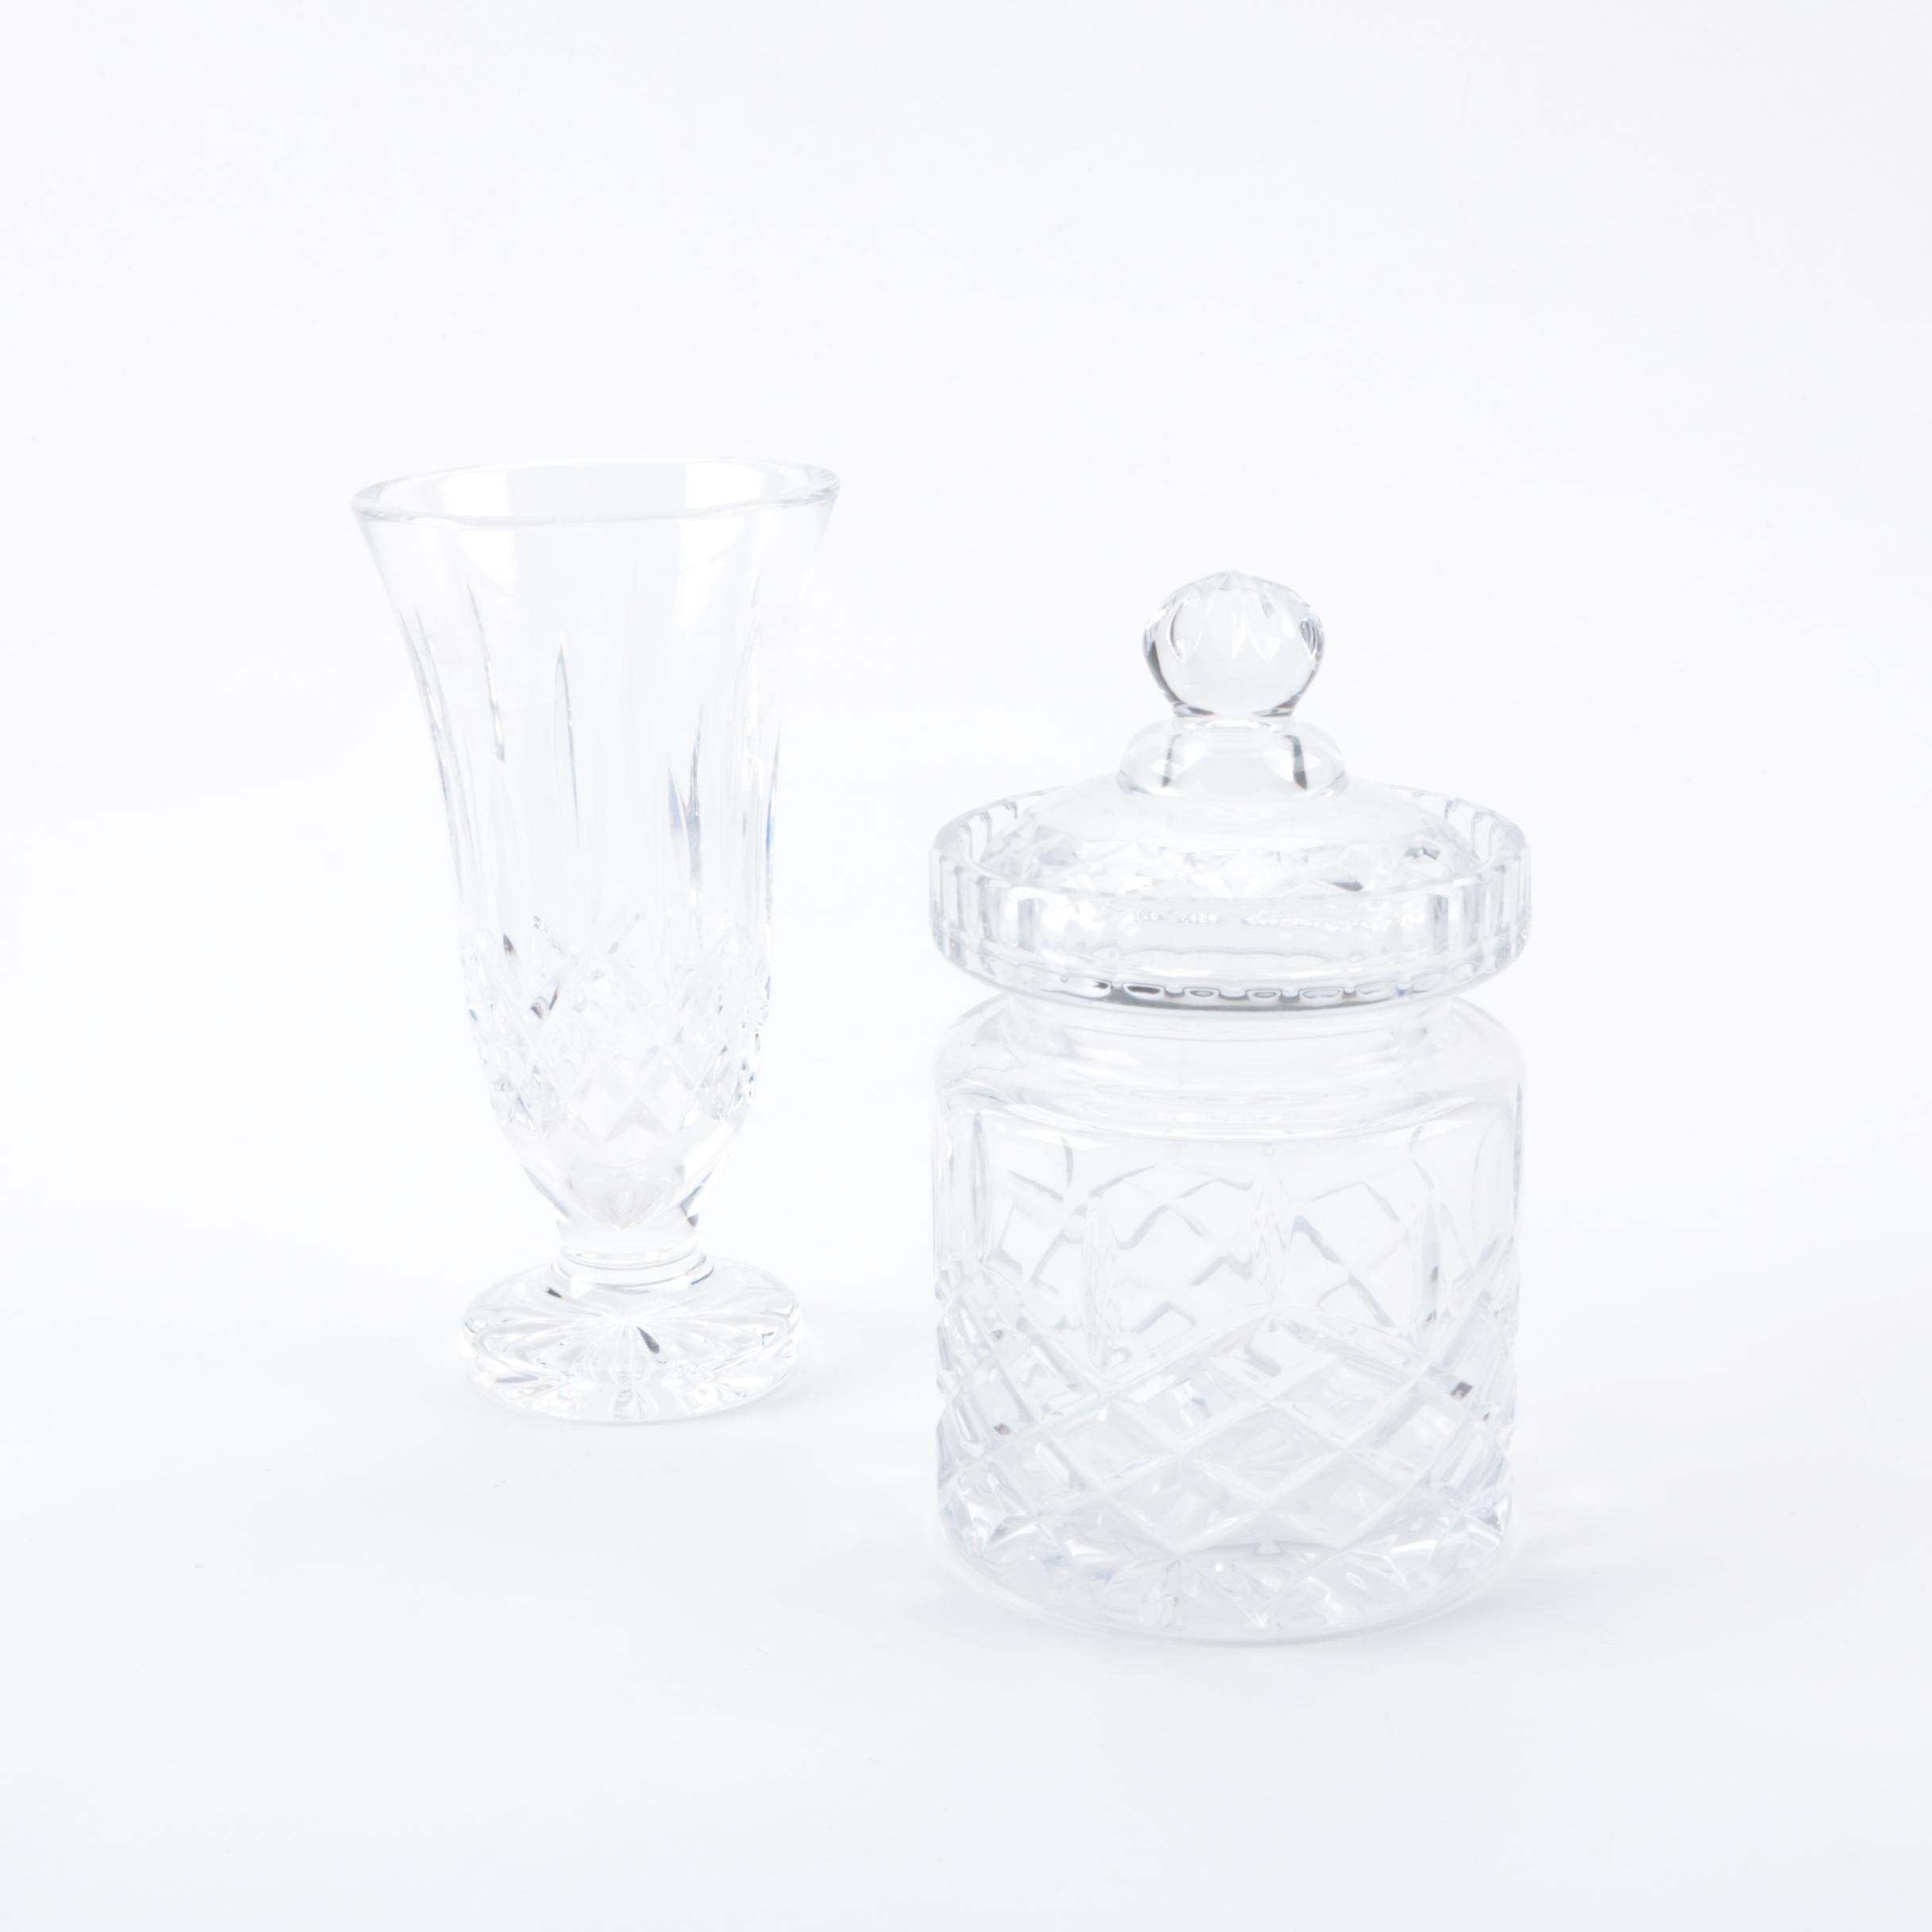 Assortment of Crystal Decor Including Waterford